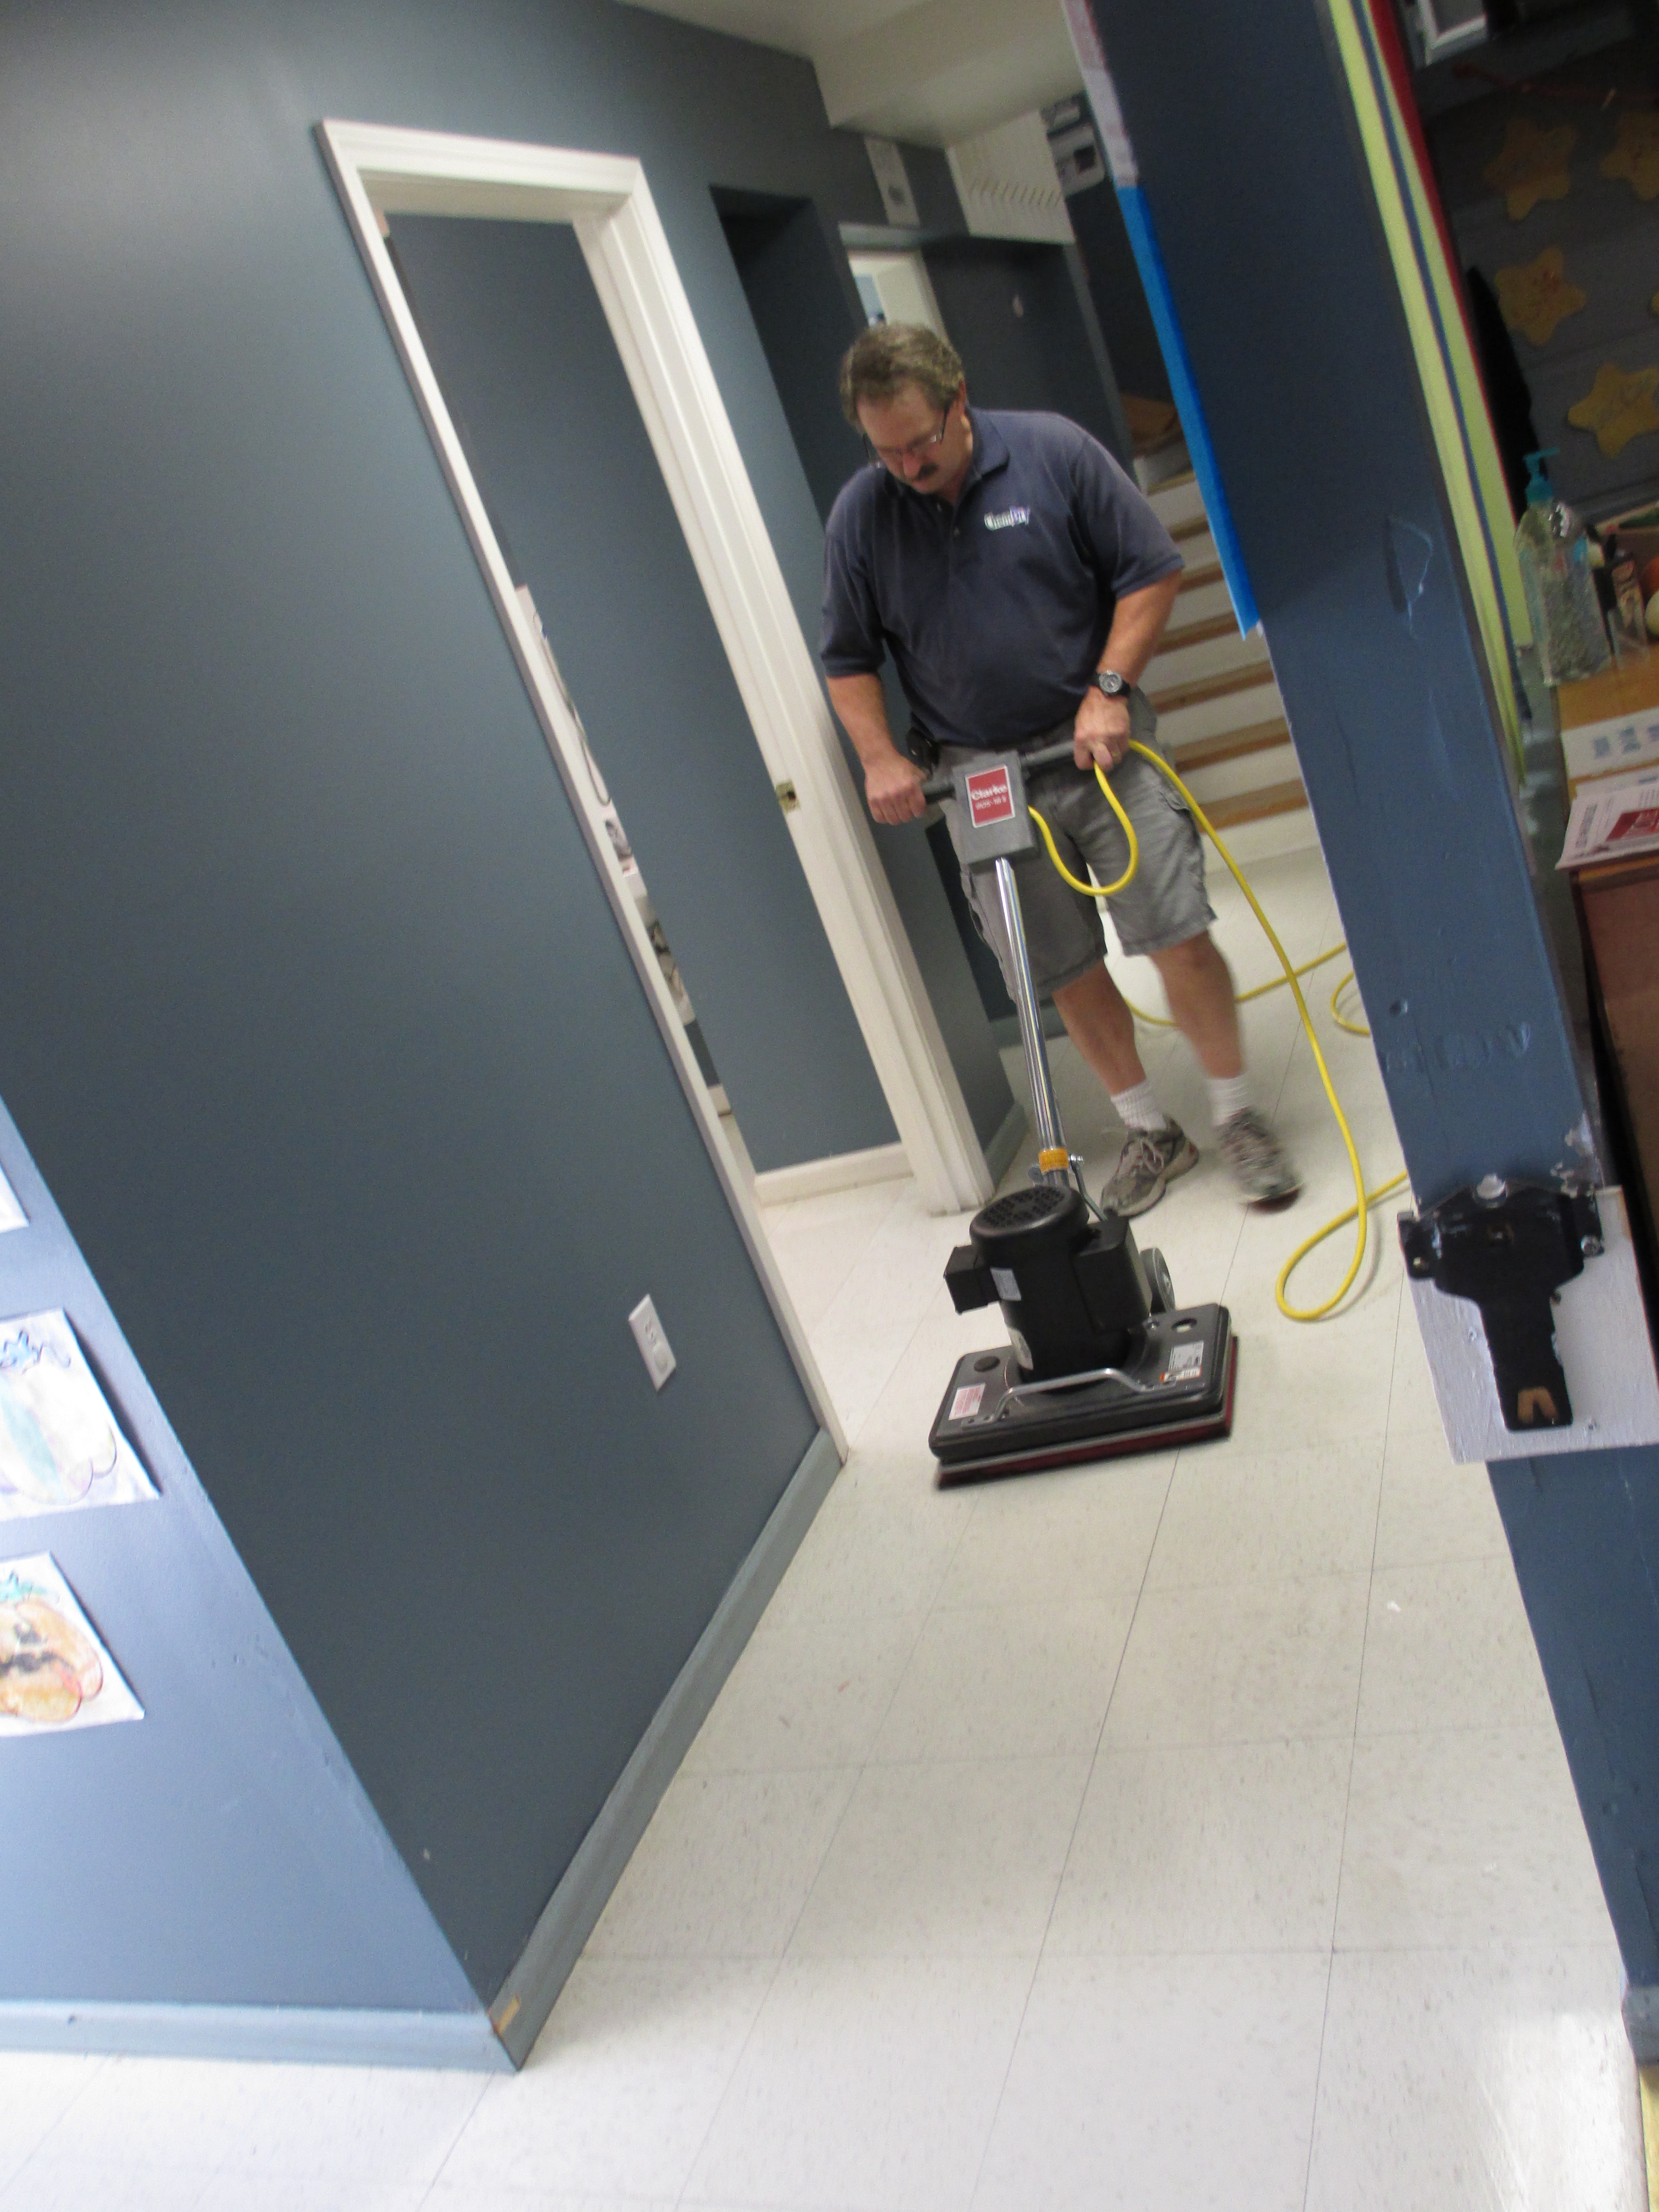 Strip and wax tile floors j and s janitorial serivcesj and s strip and wax tile floors dailygadgetfo Choice Image